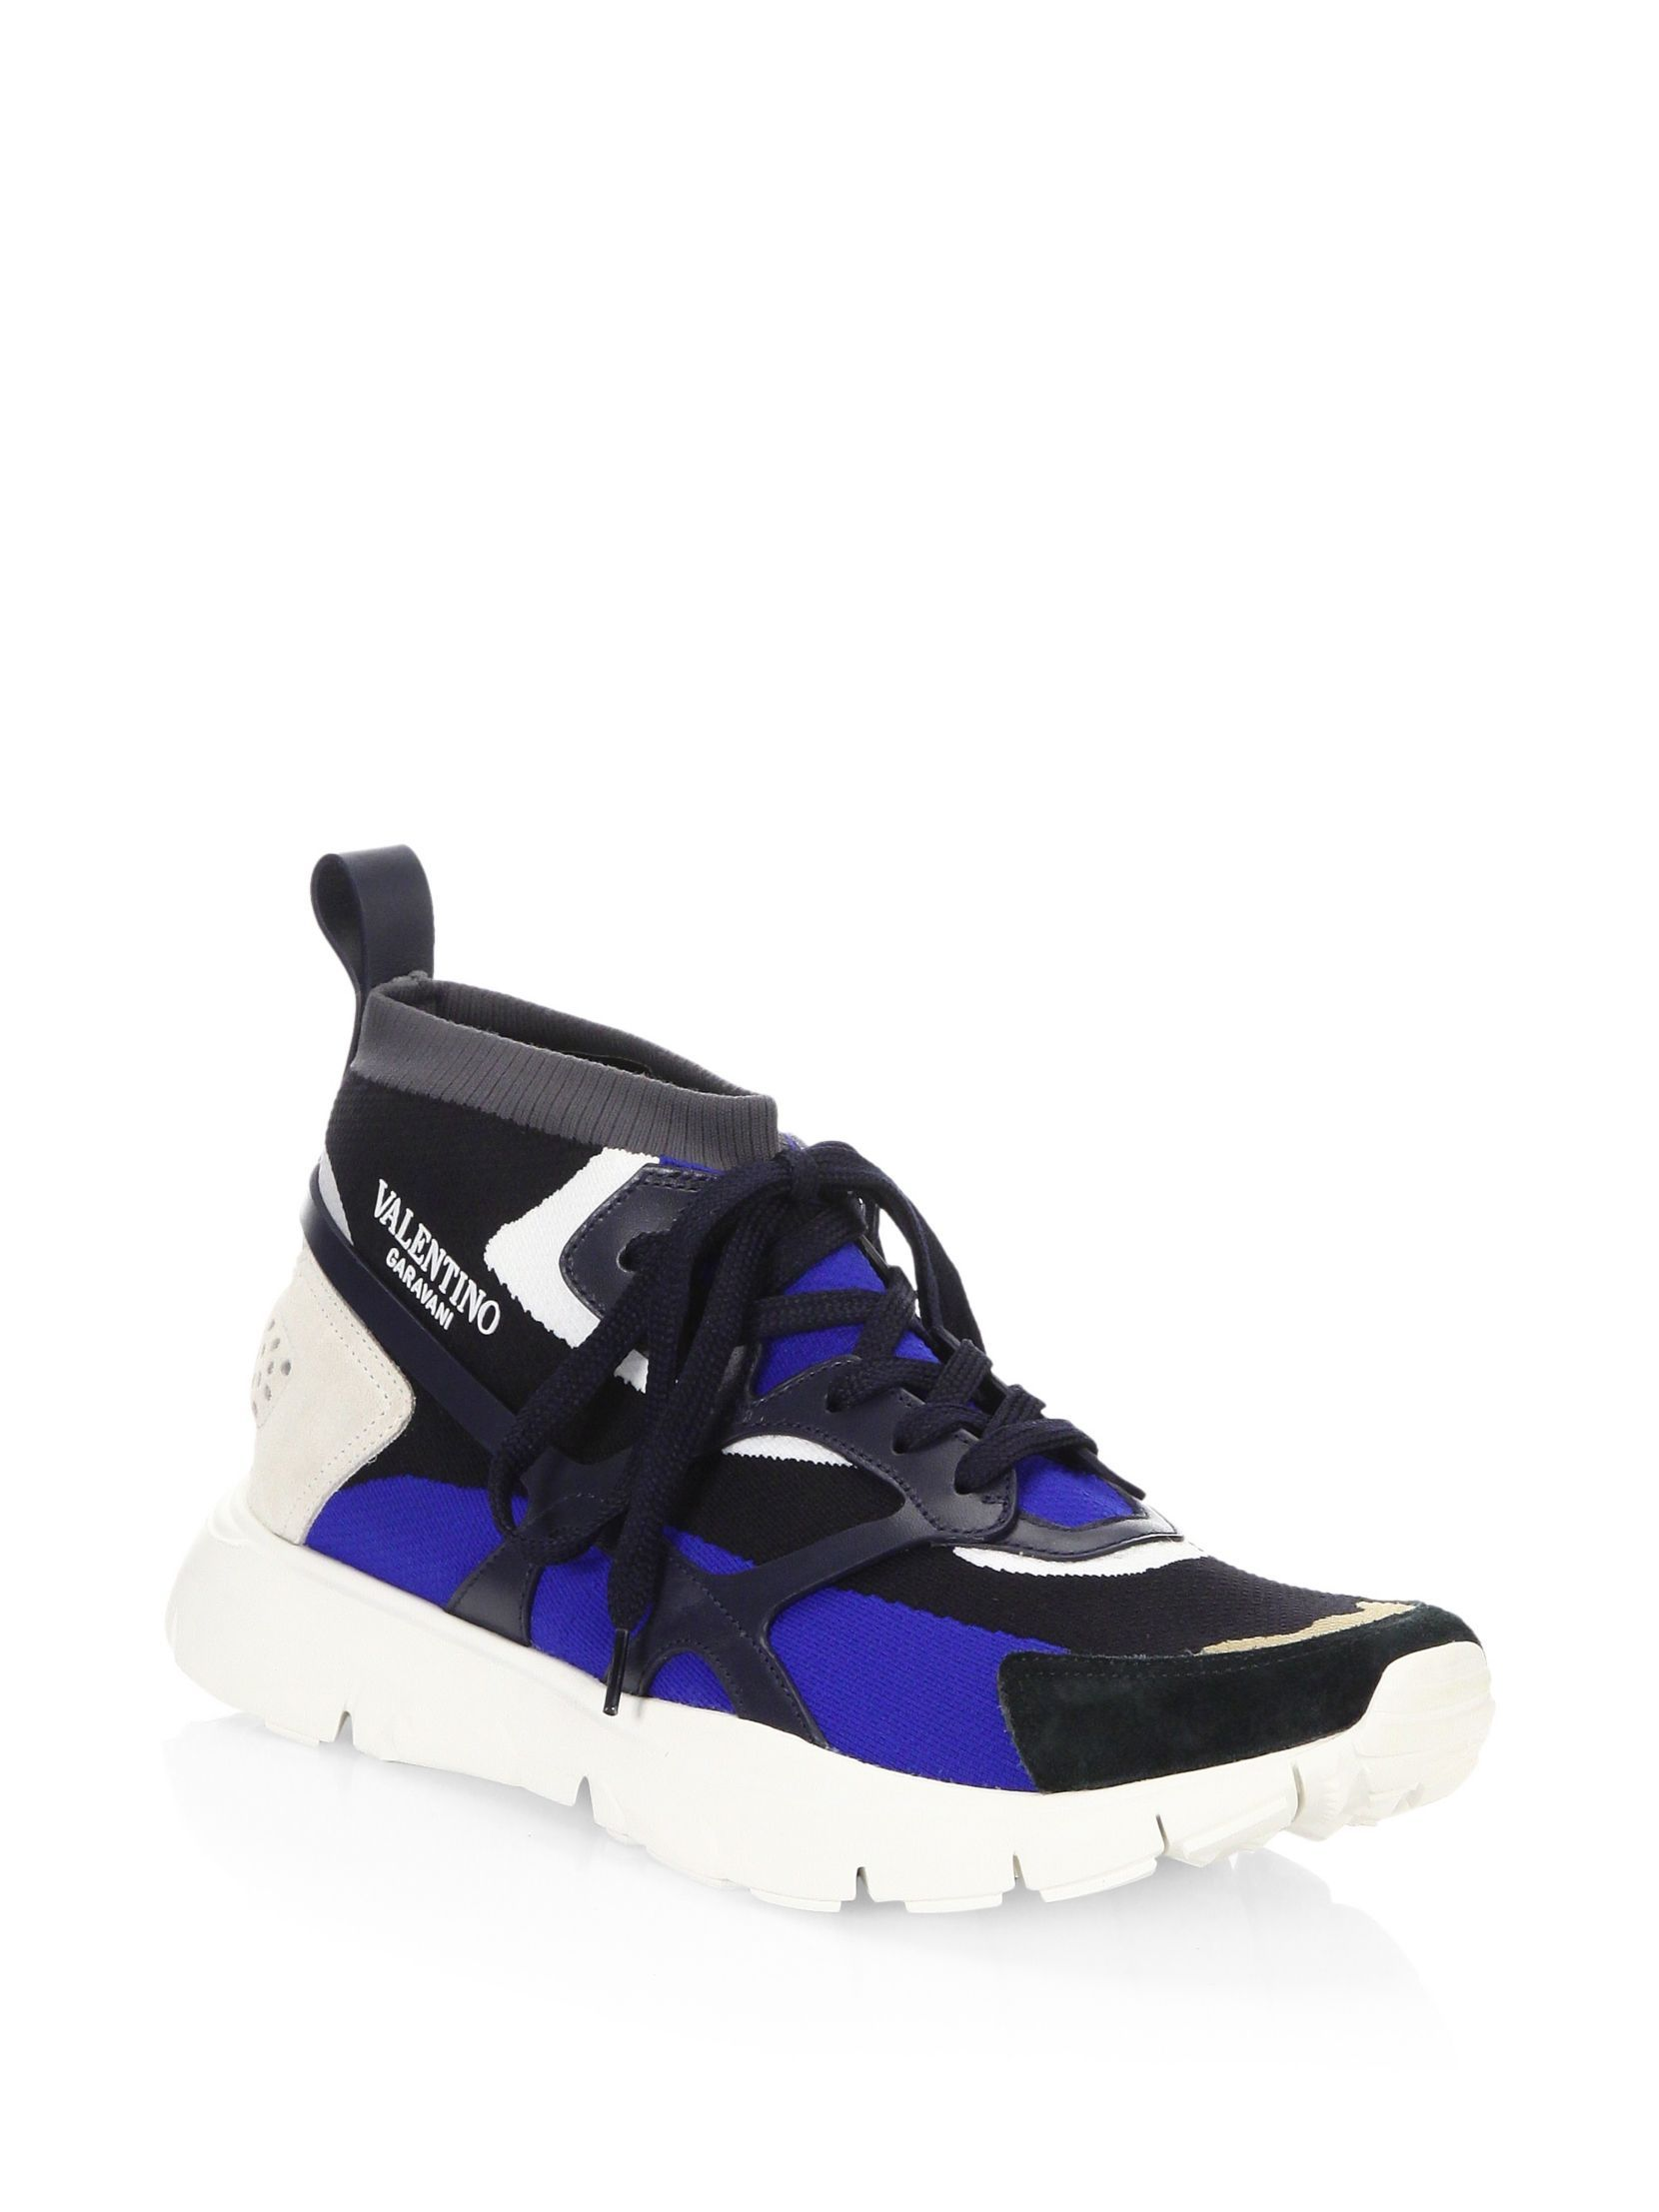 Read more Multicolor Valentino Garavani Sound High-Top Sneakers 80nw4xD3qo